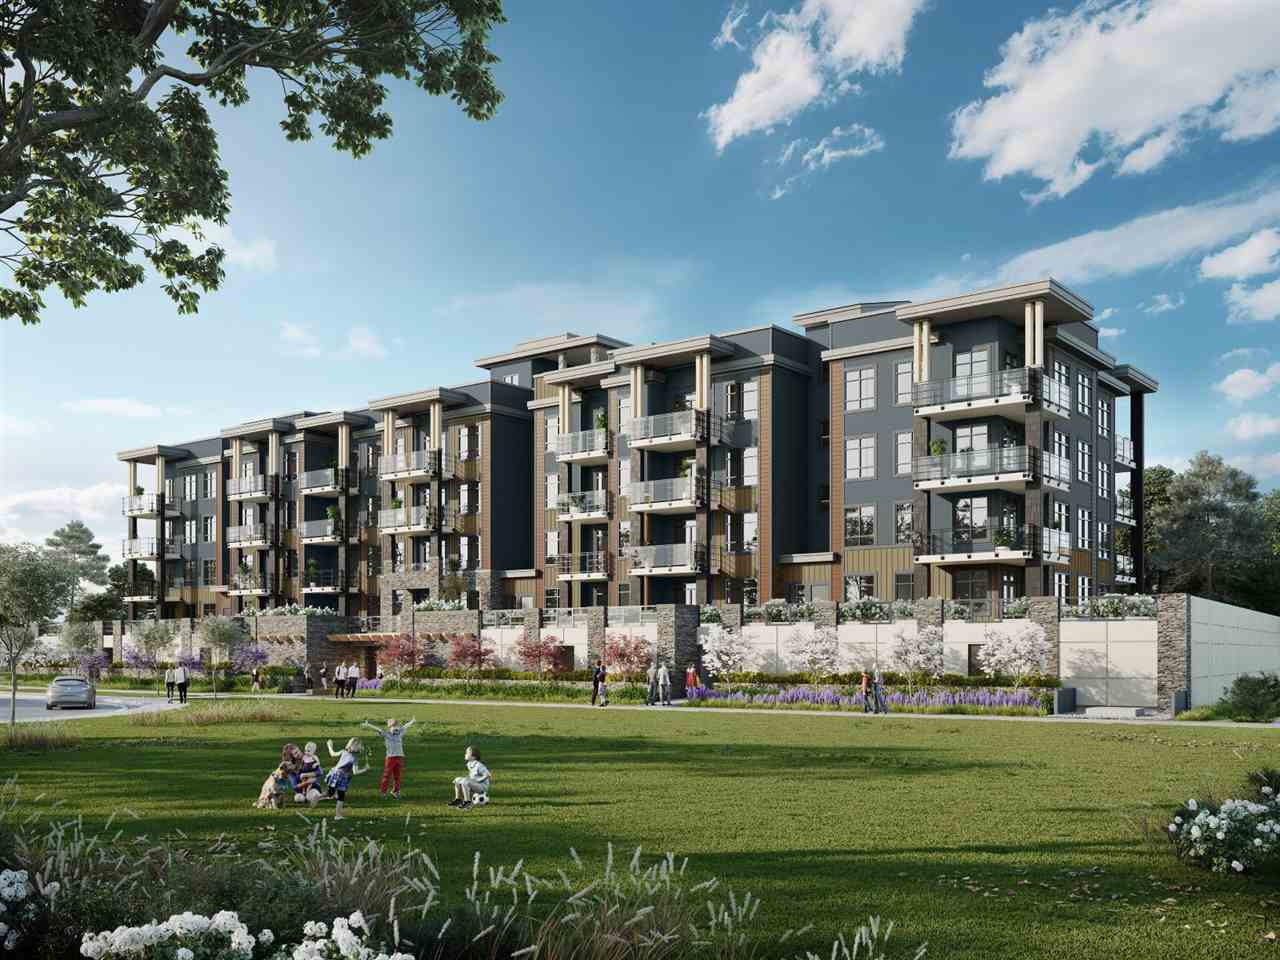 """Main Photo: 405 45562 AIRPORT Road in Chilliwack: Chilliwack E Young-Yale Condo for sale in """"THE ELLIOT"""" : MLS®# R2419883"""